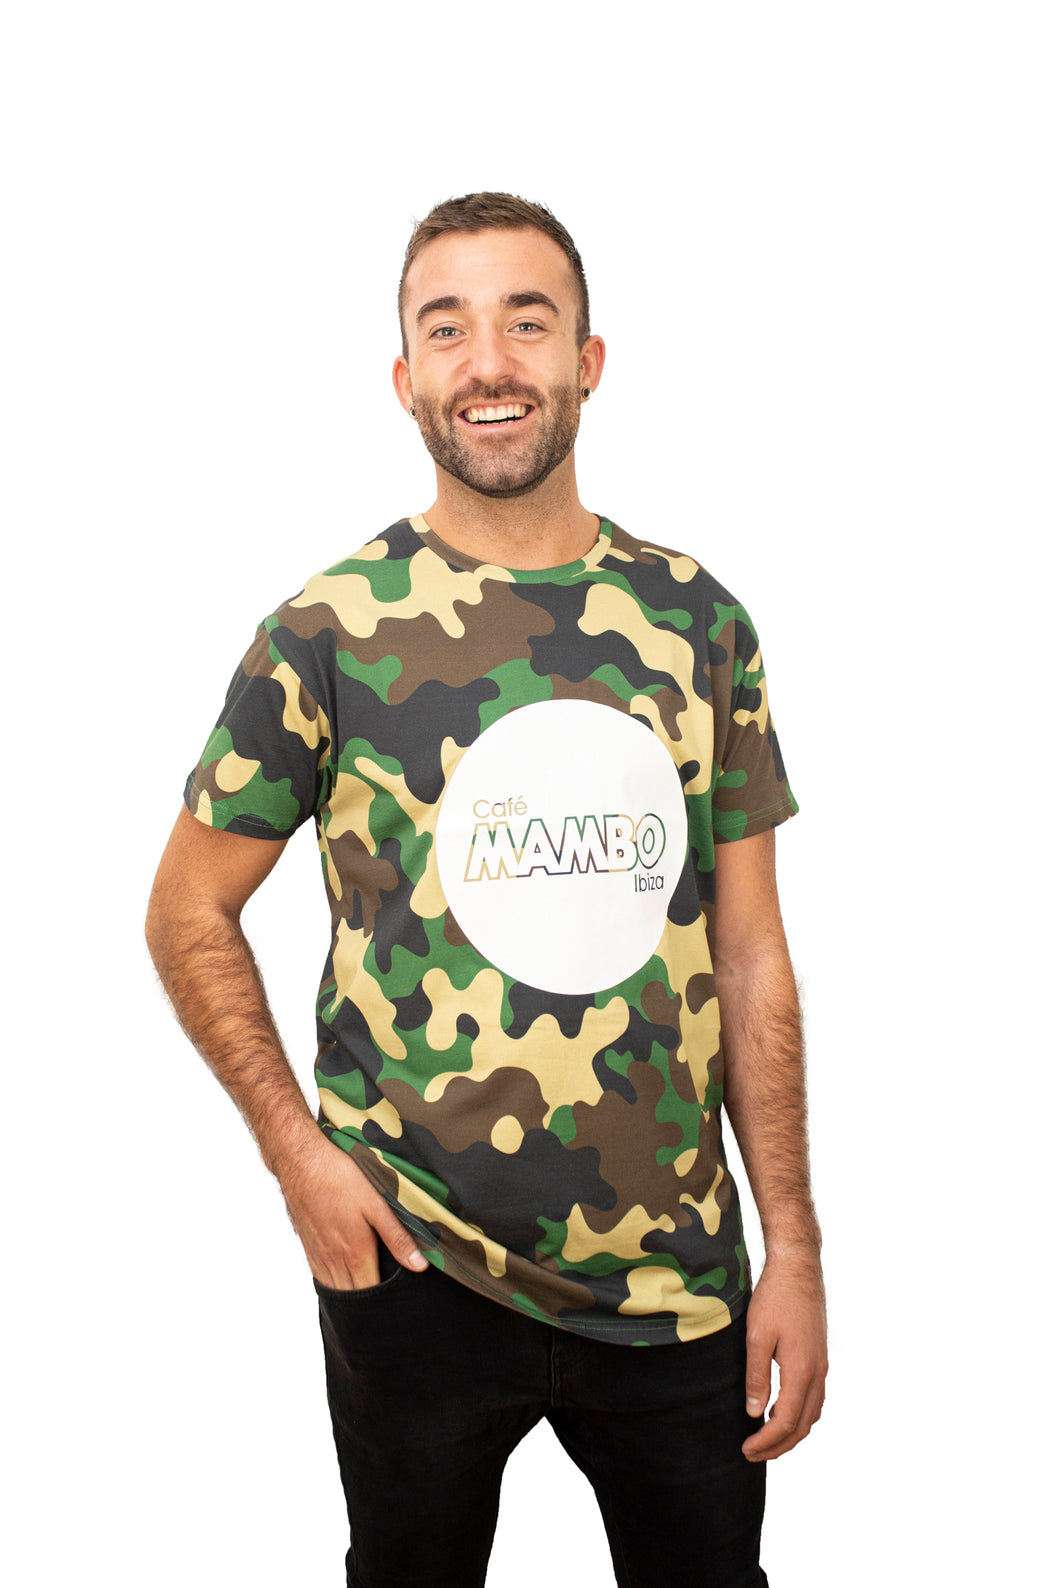 Cafe Mambo Camouflage Tee